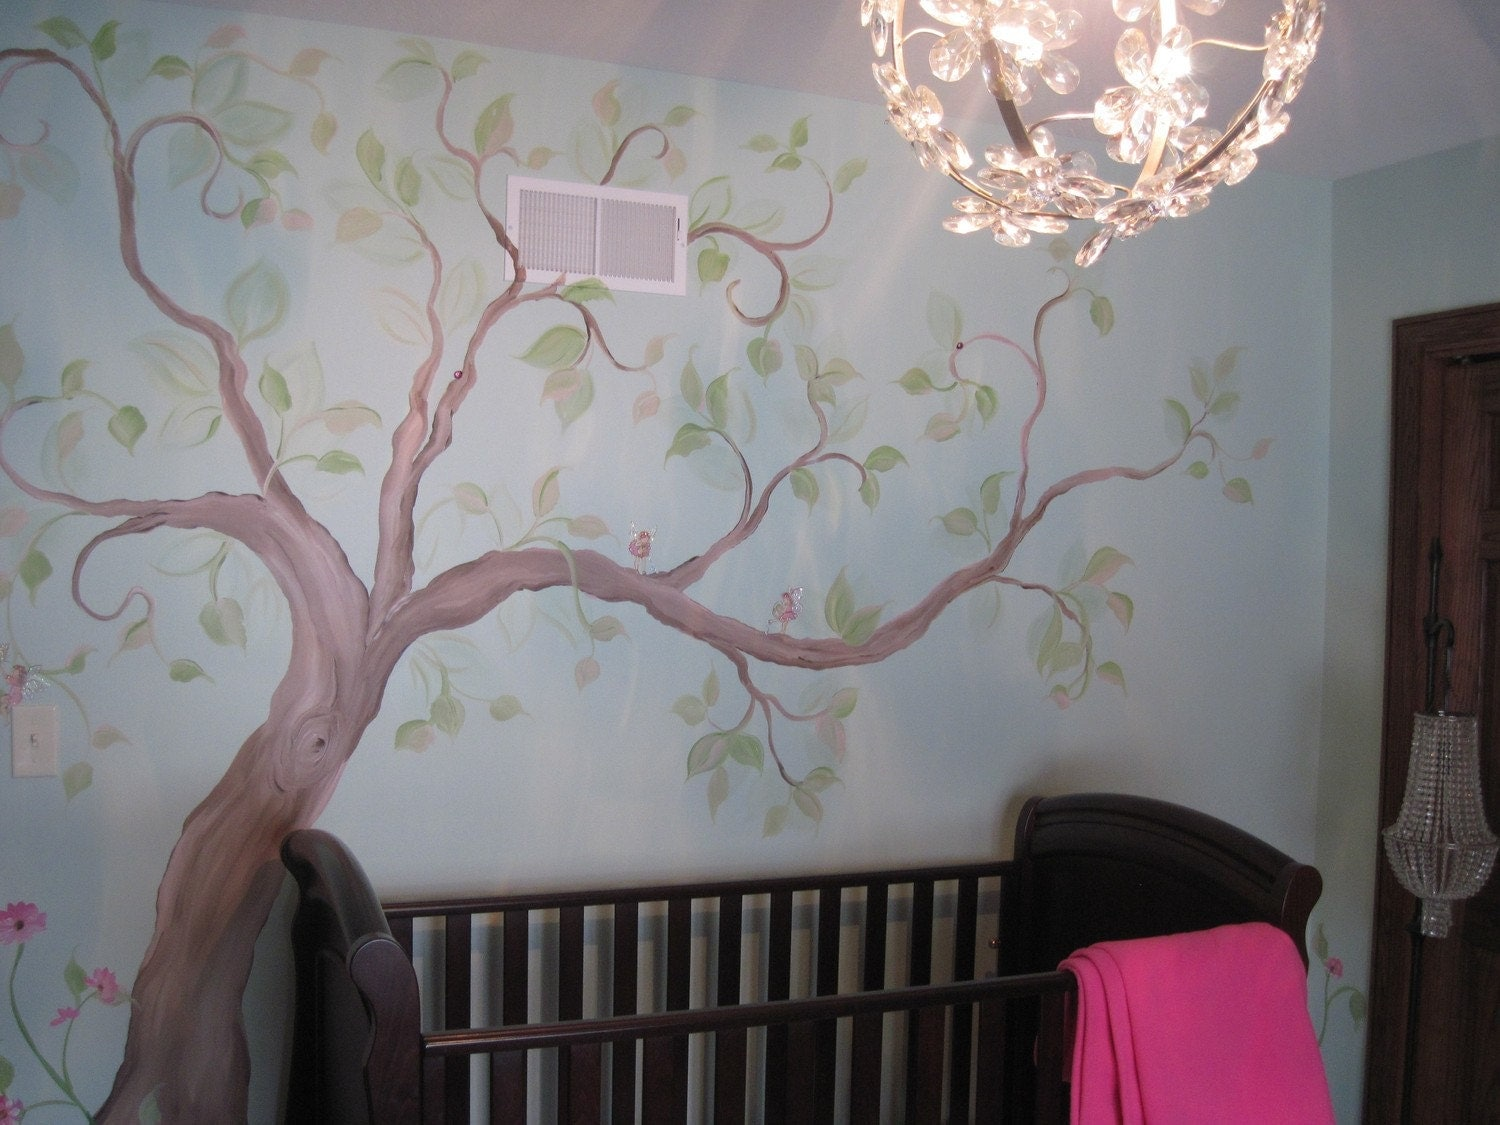 Estimate for tree mural nursery art hand painted custom for Baby nursery mural